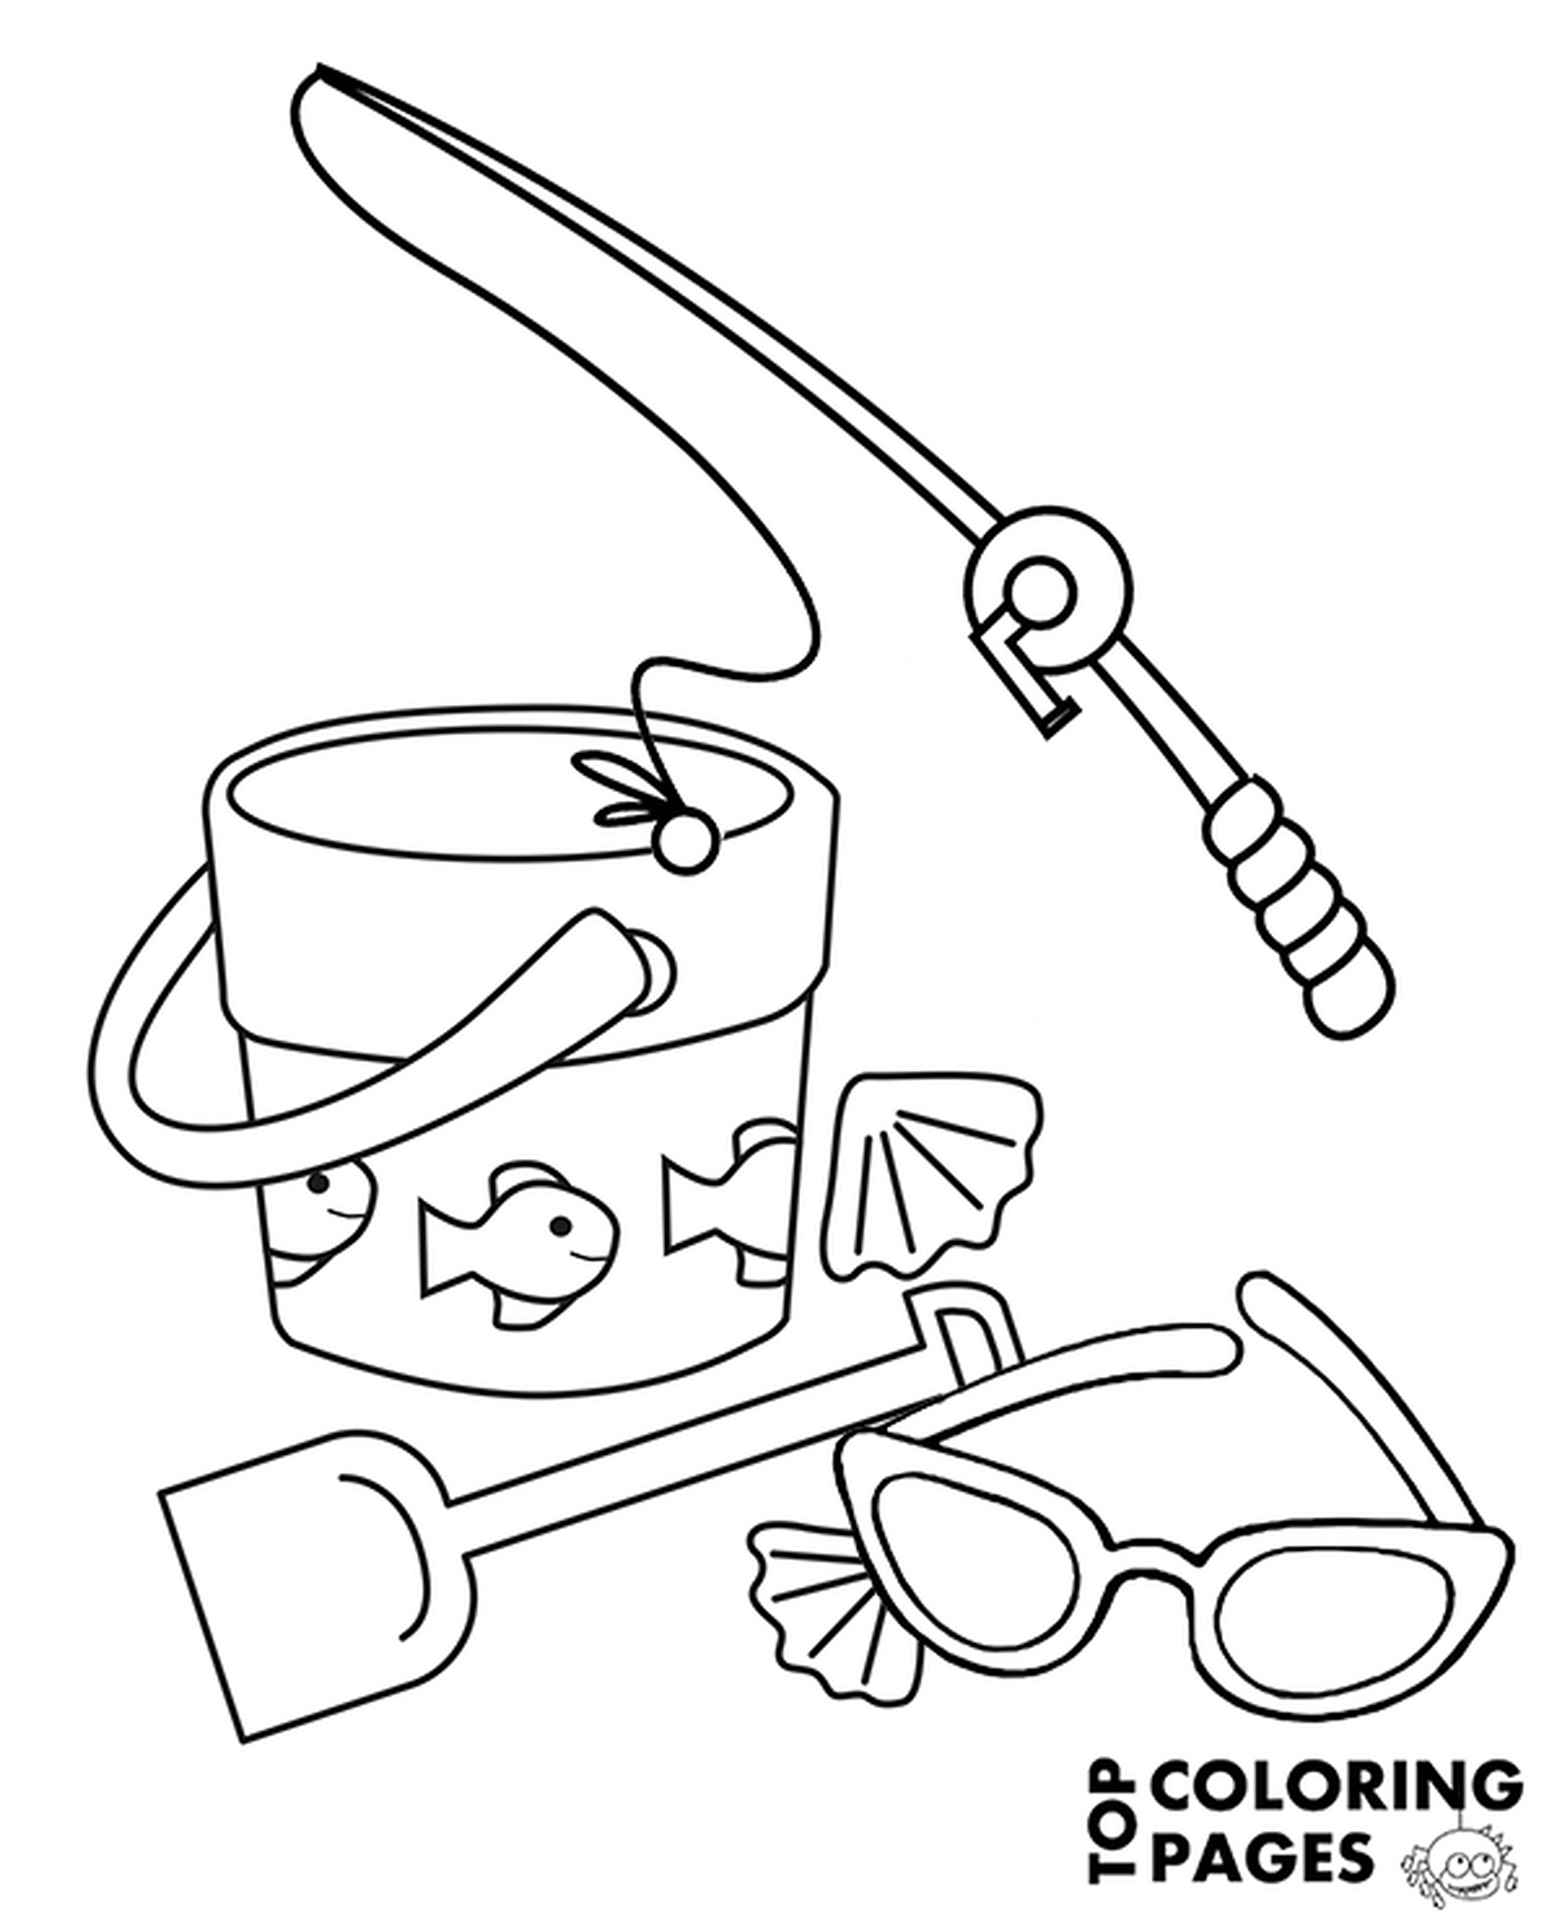 Fishing Rod Sunglasses Coloring Page